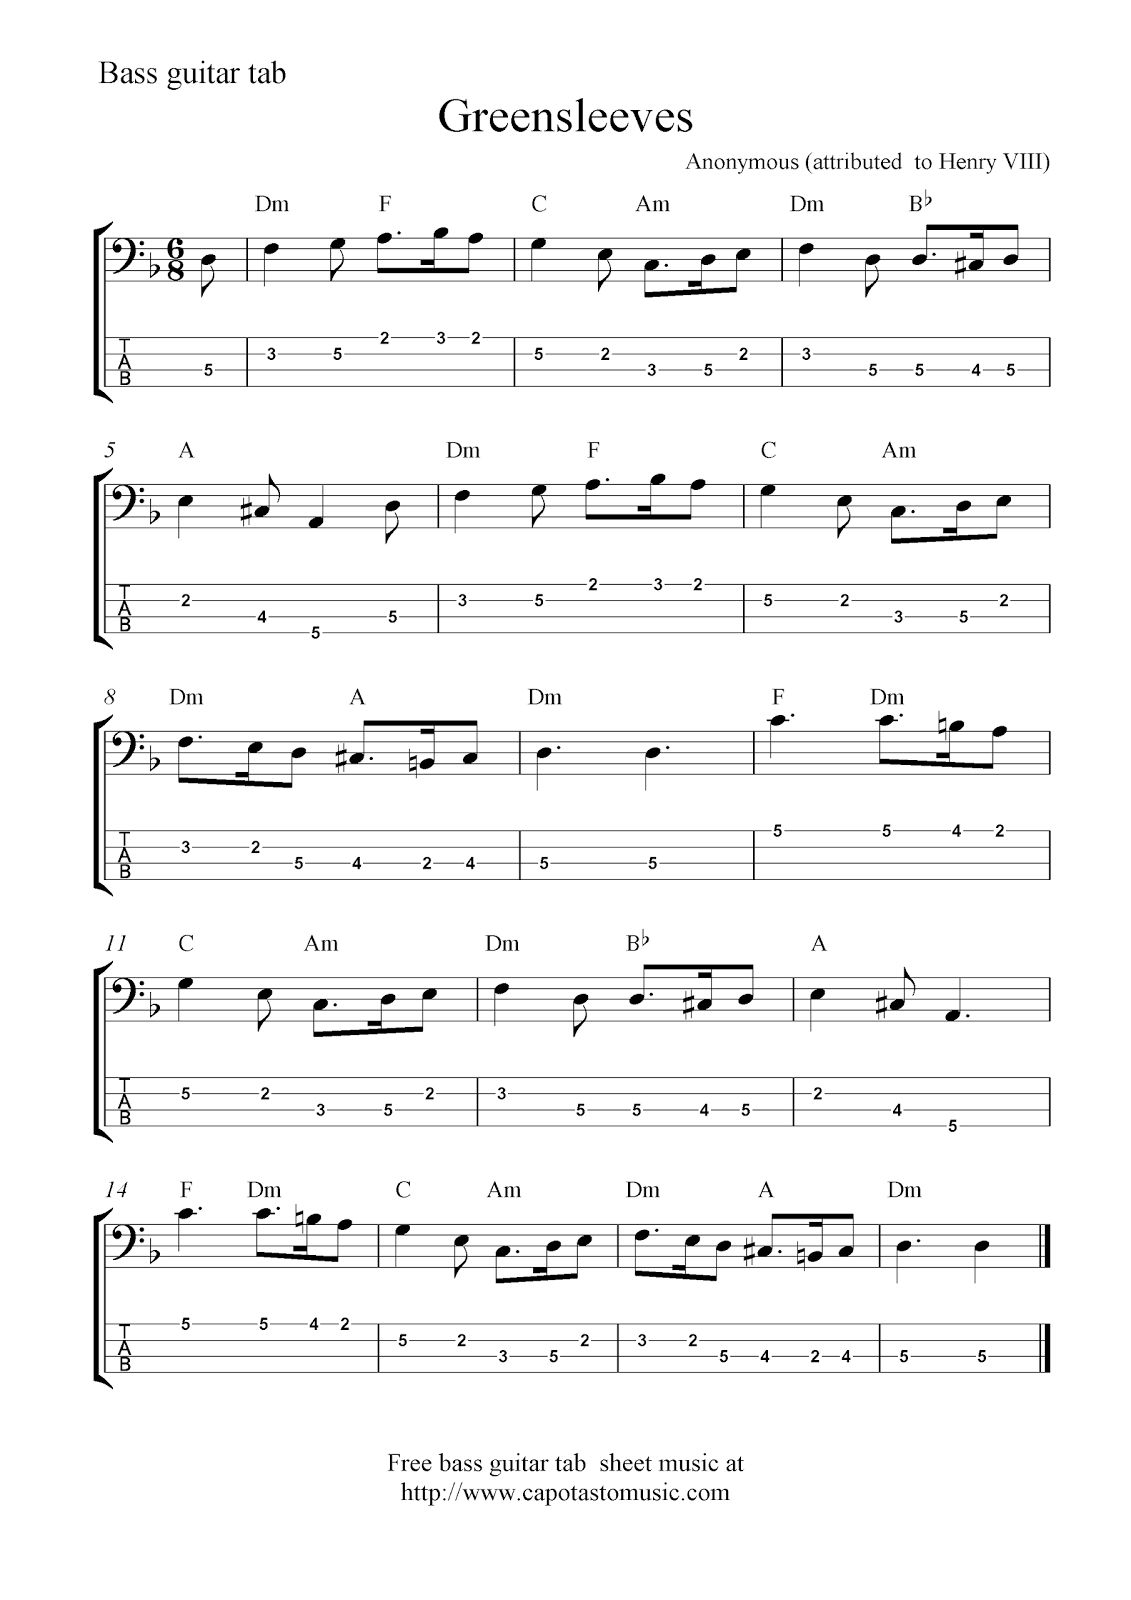 Free Bass Guitar Tab Sheet Music, Greensleeves - Free Printable Guitar Tabs For Beginners